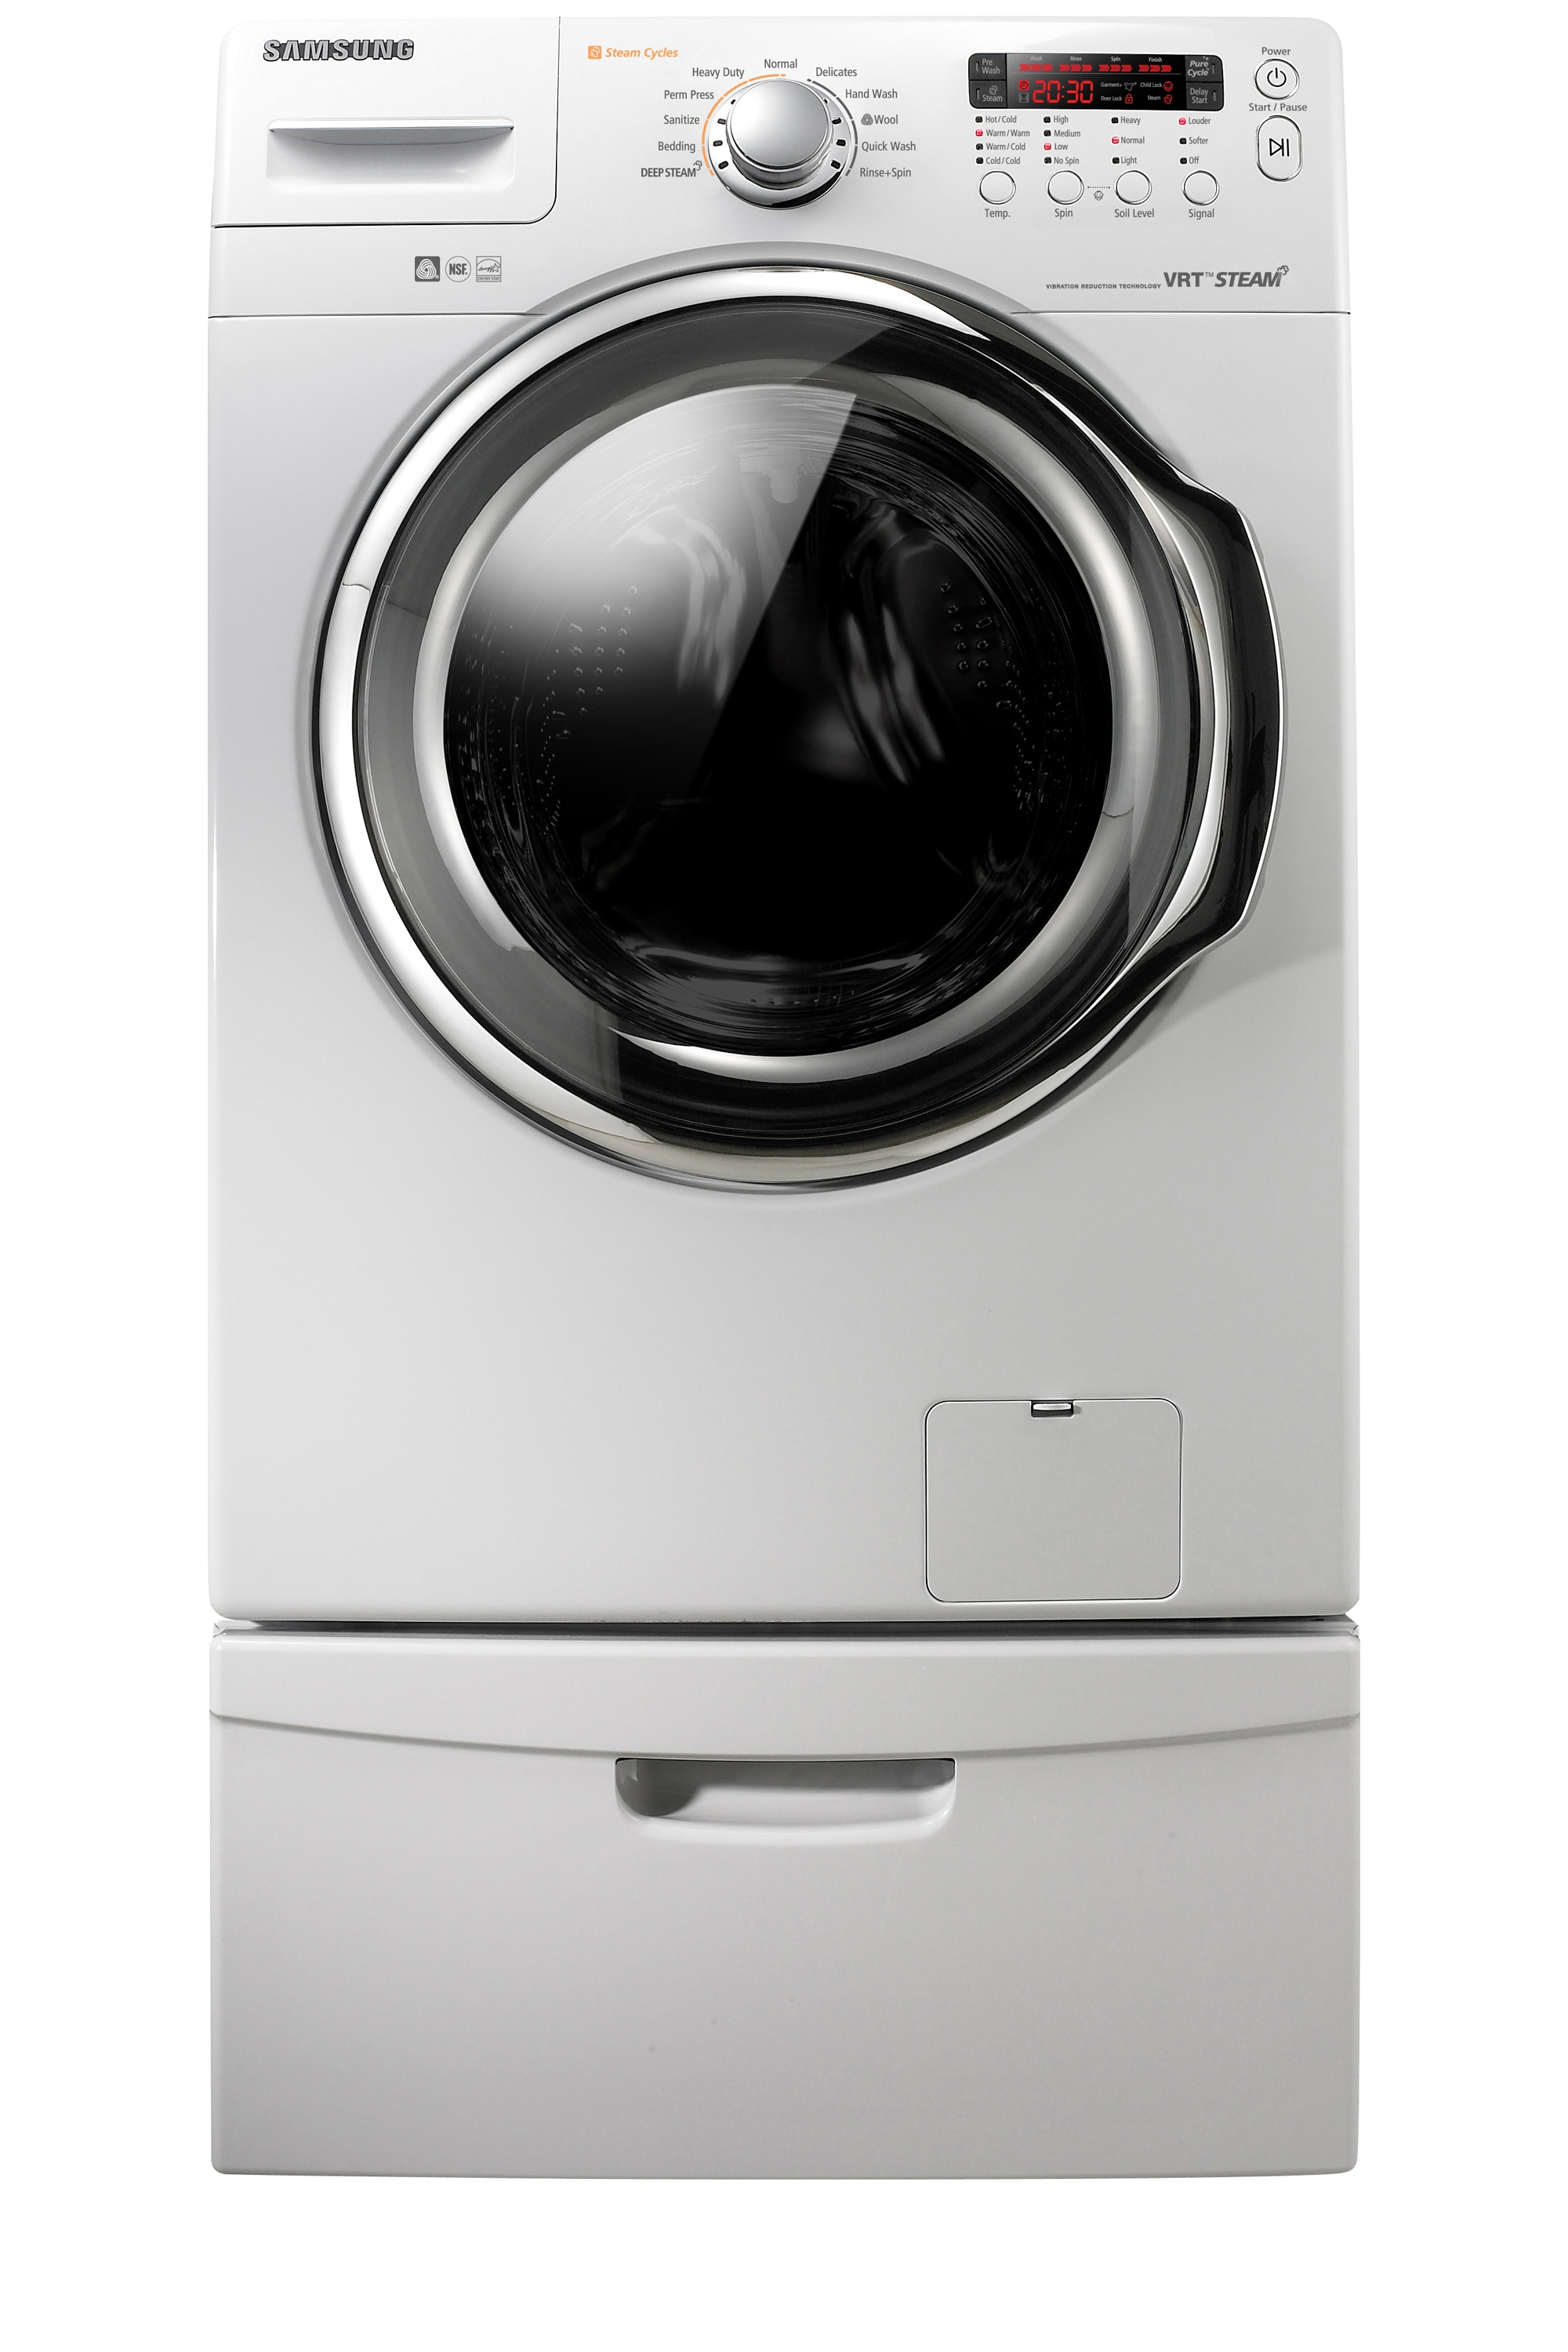 WF331ANW 4.3 cu. ft. Front Load Washer White